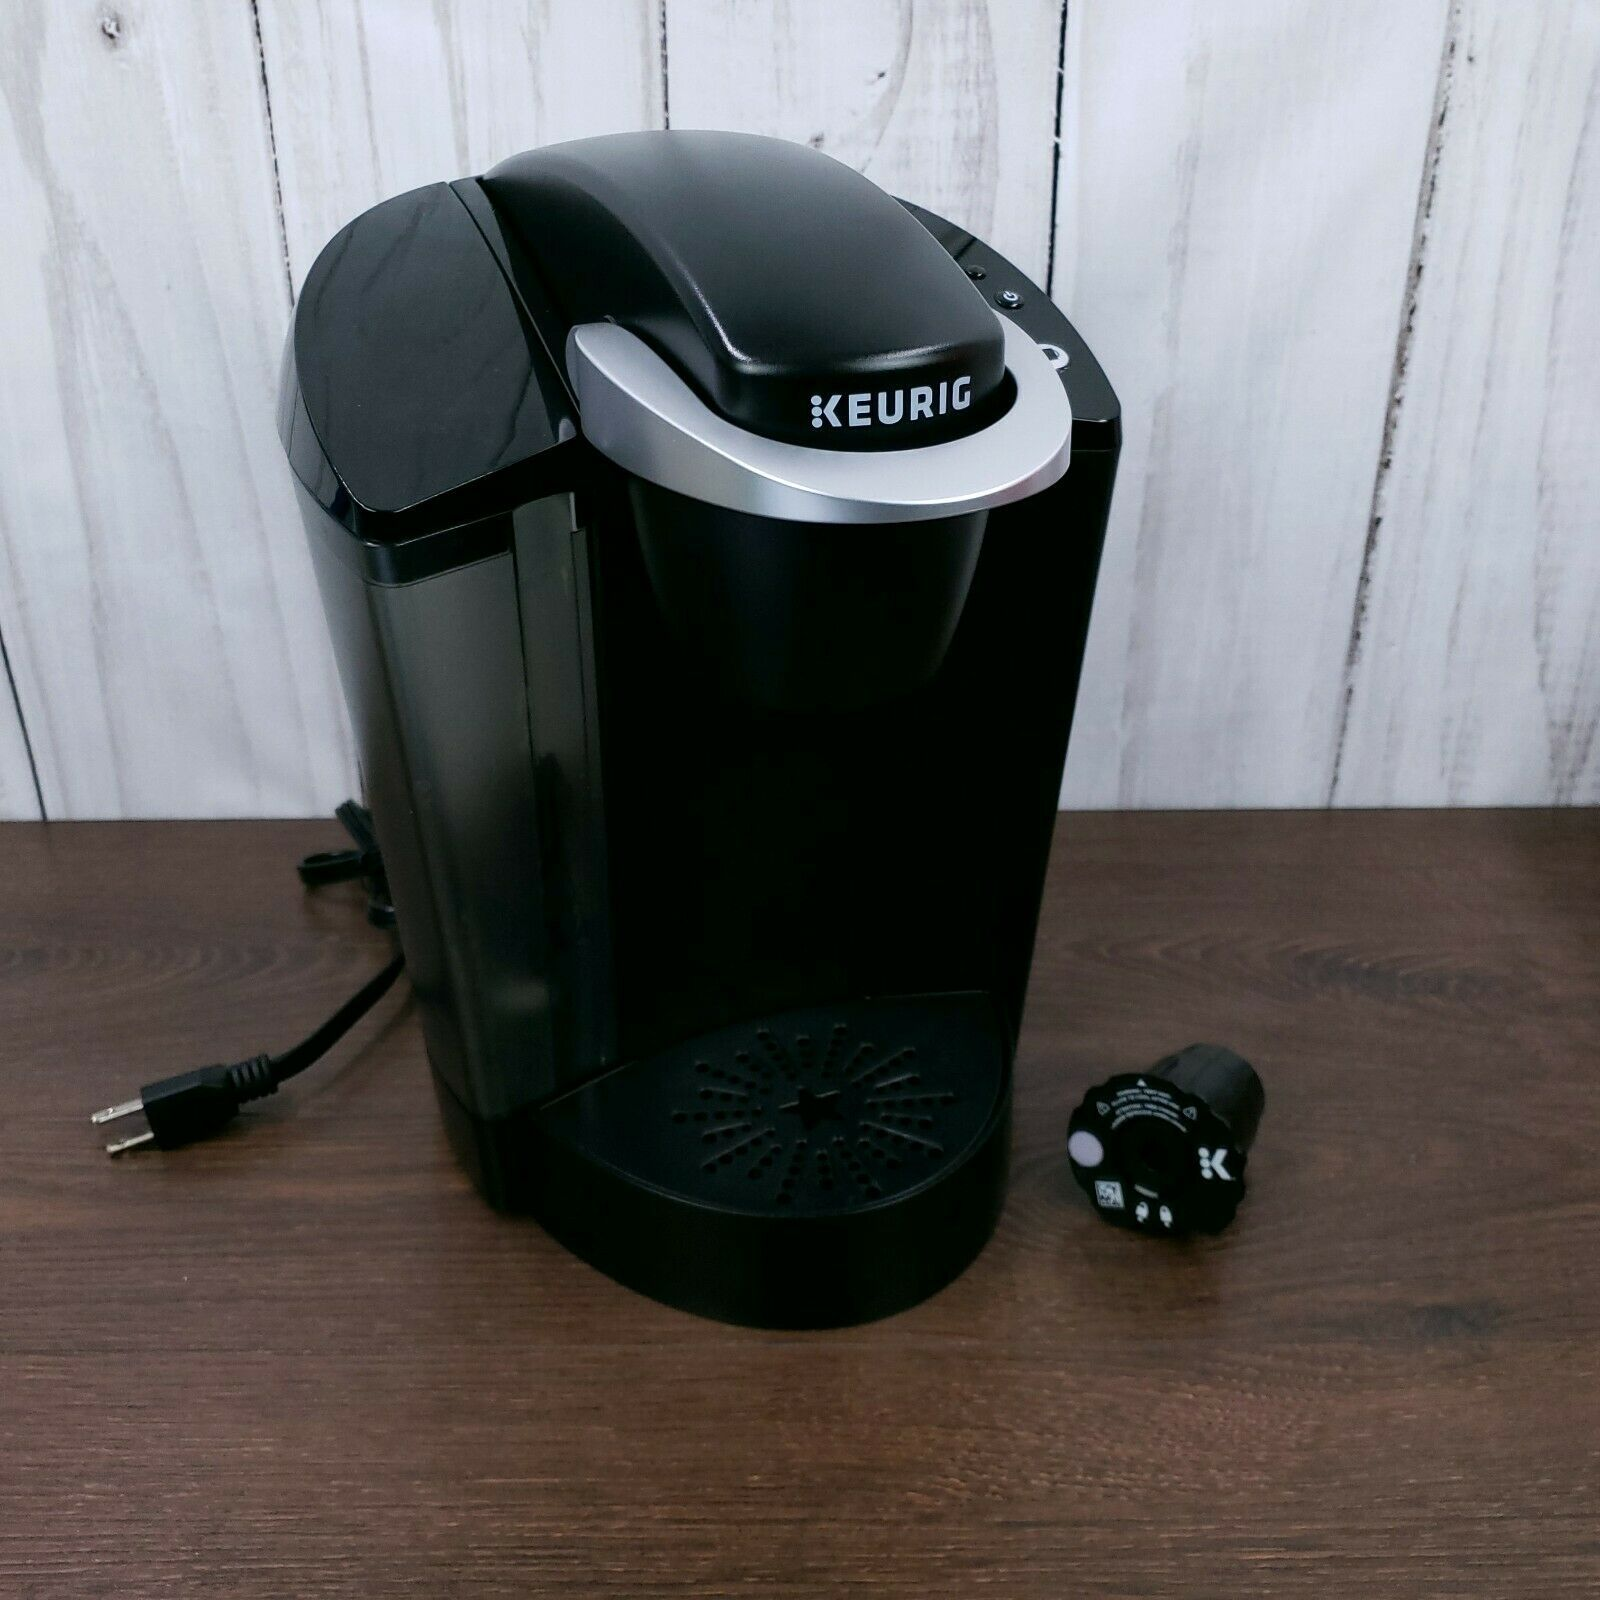 Details About Keurig K40 Elite Single Cup Coffee Maker Brewing